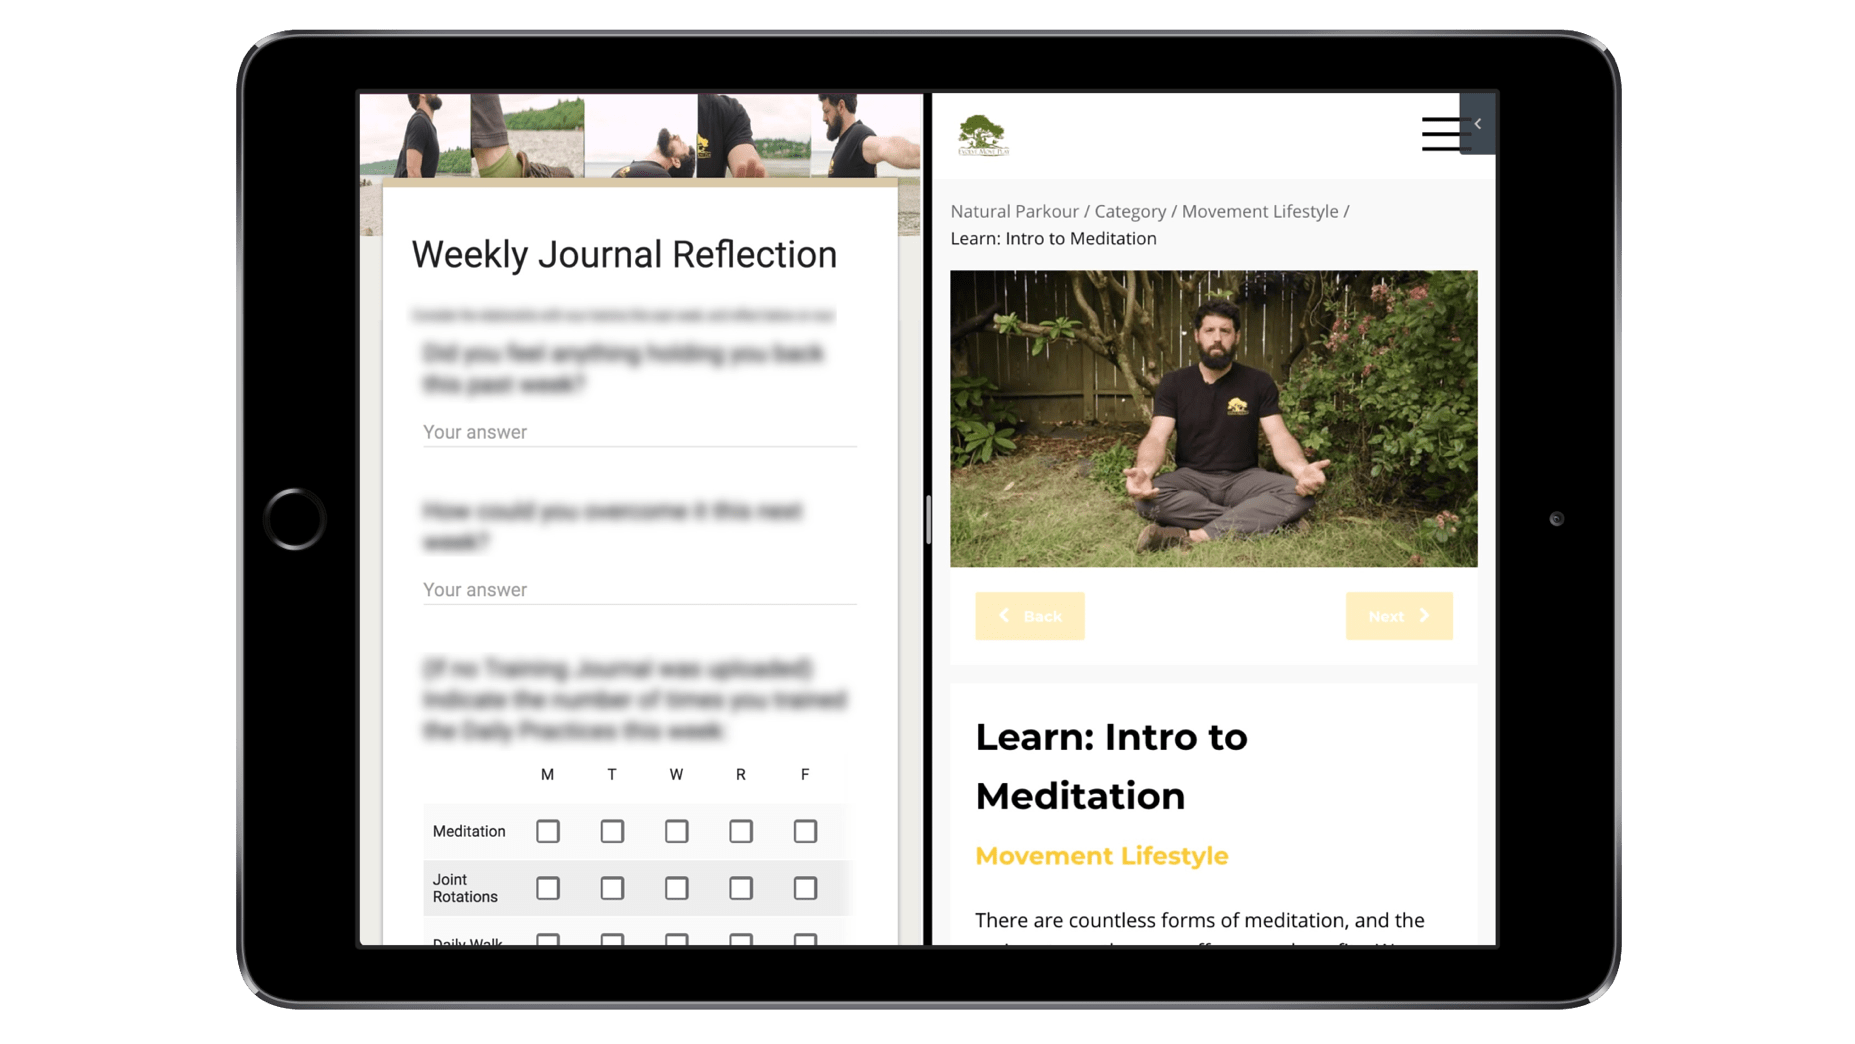 iPad Split Screen meditation - Intro to Natural Parkour